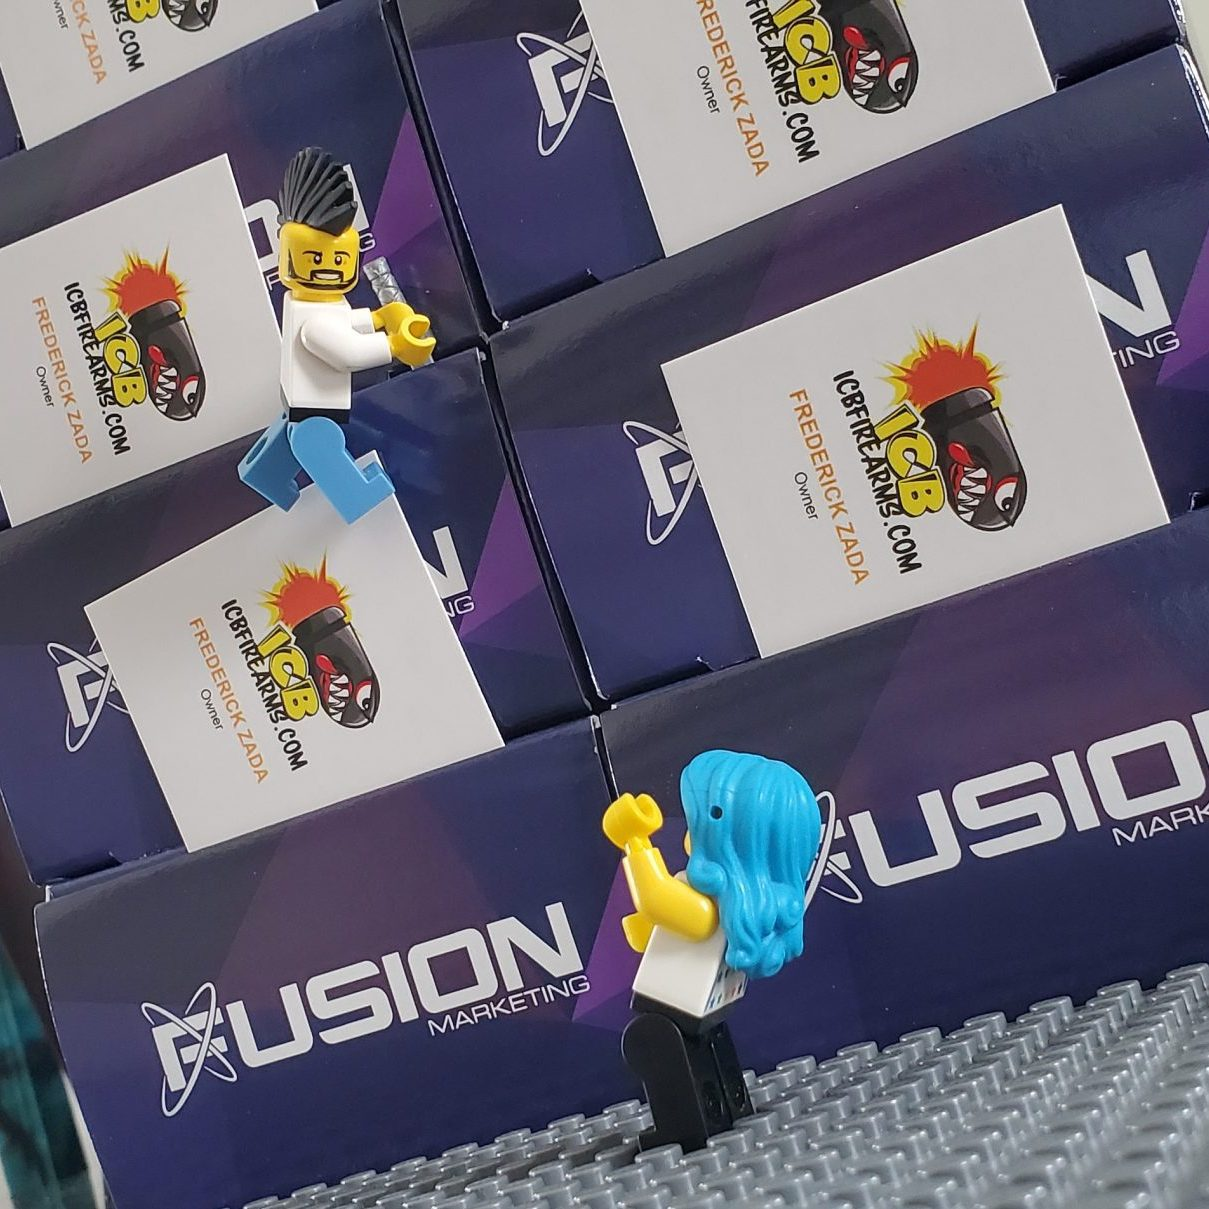 ICB Firearms - Business Cards Lego Photo 01